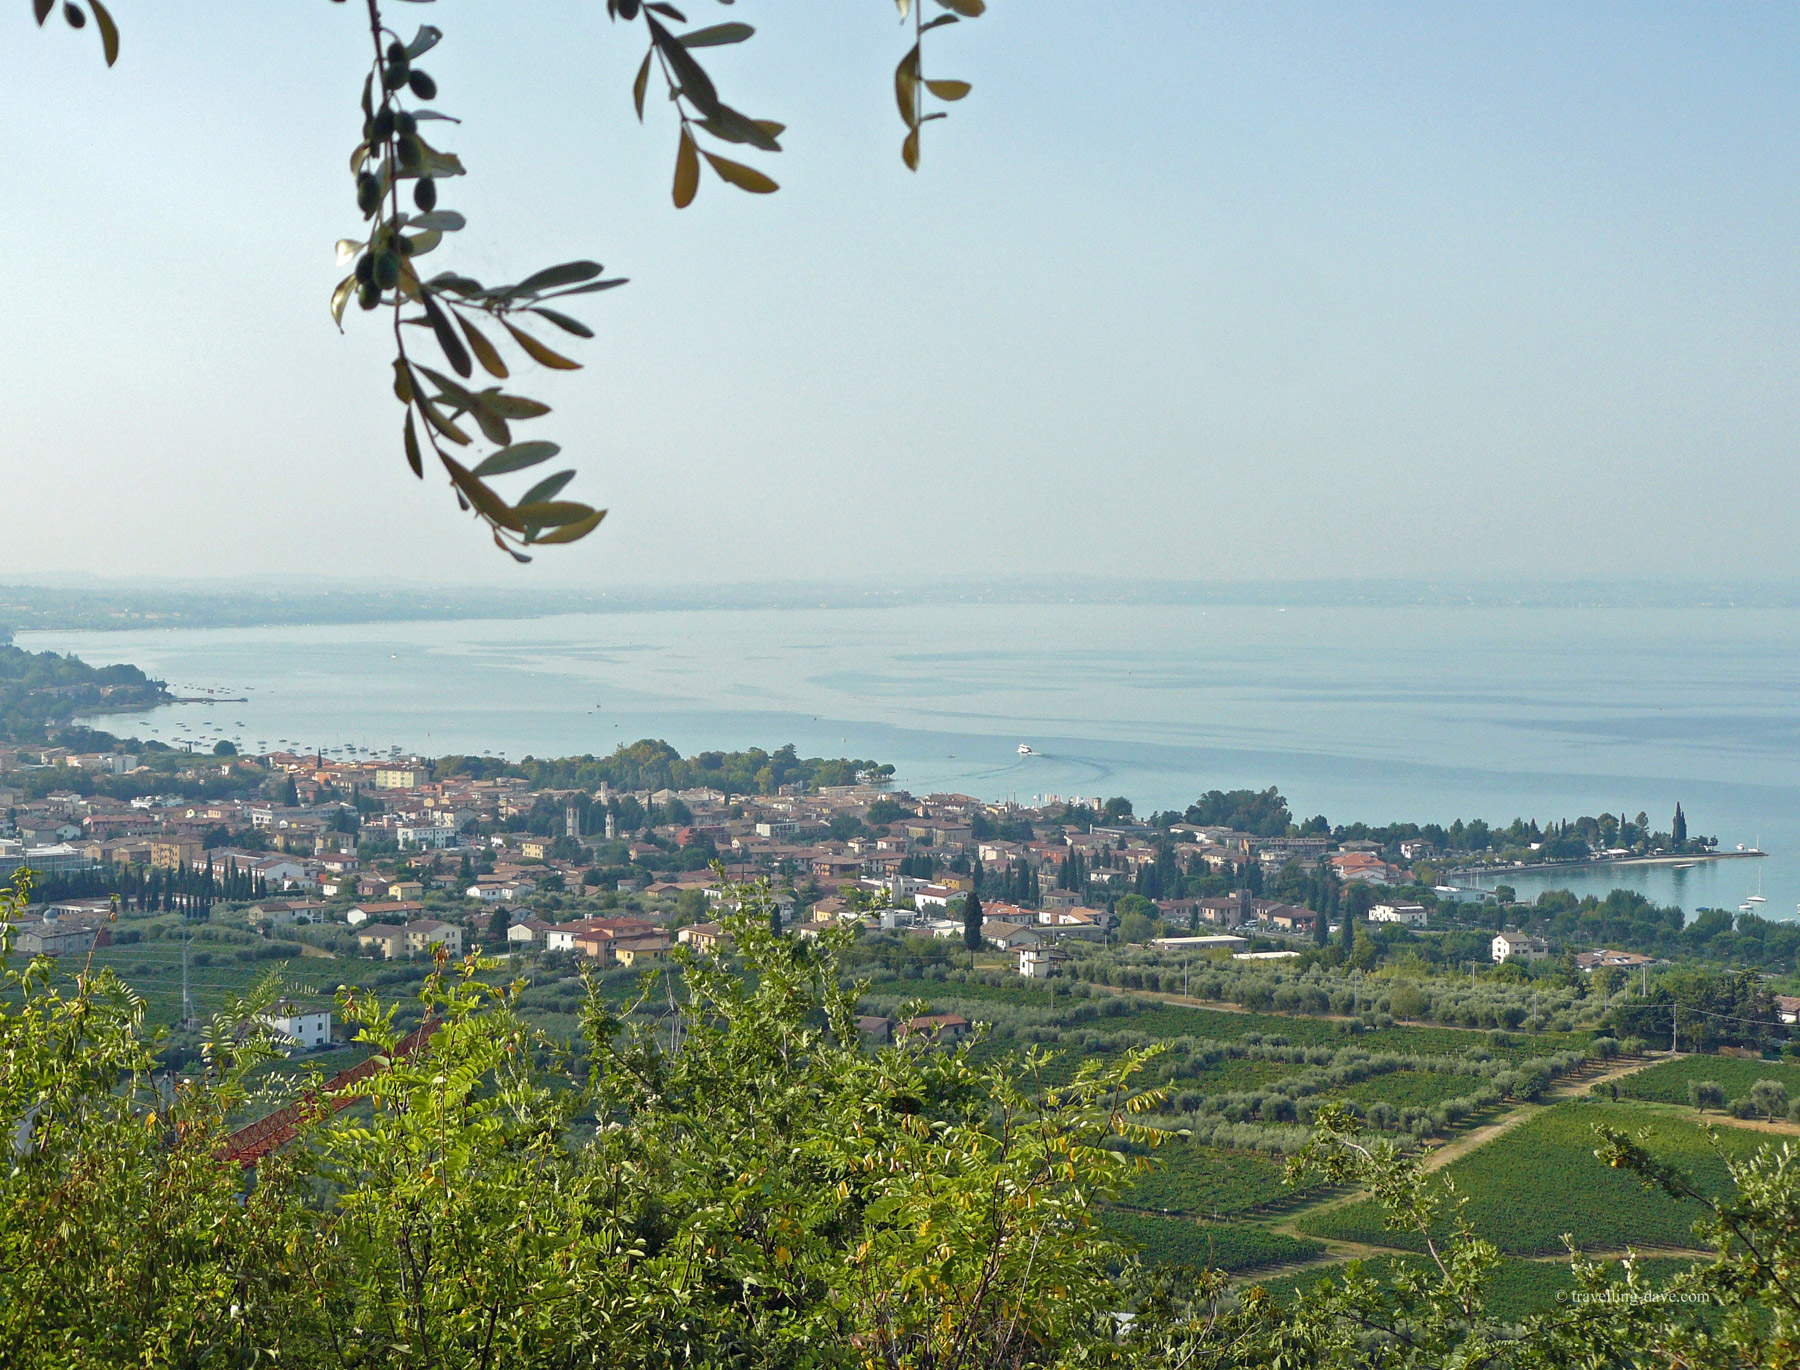 Villages on Lake Garda seen from the top of the Rock